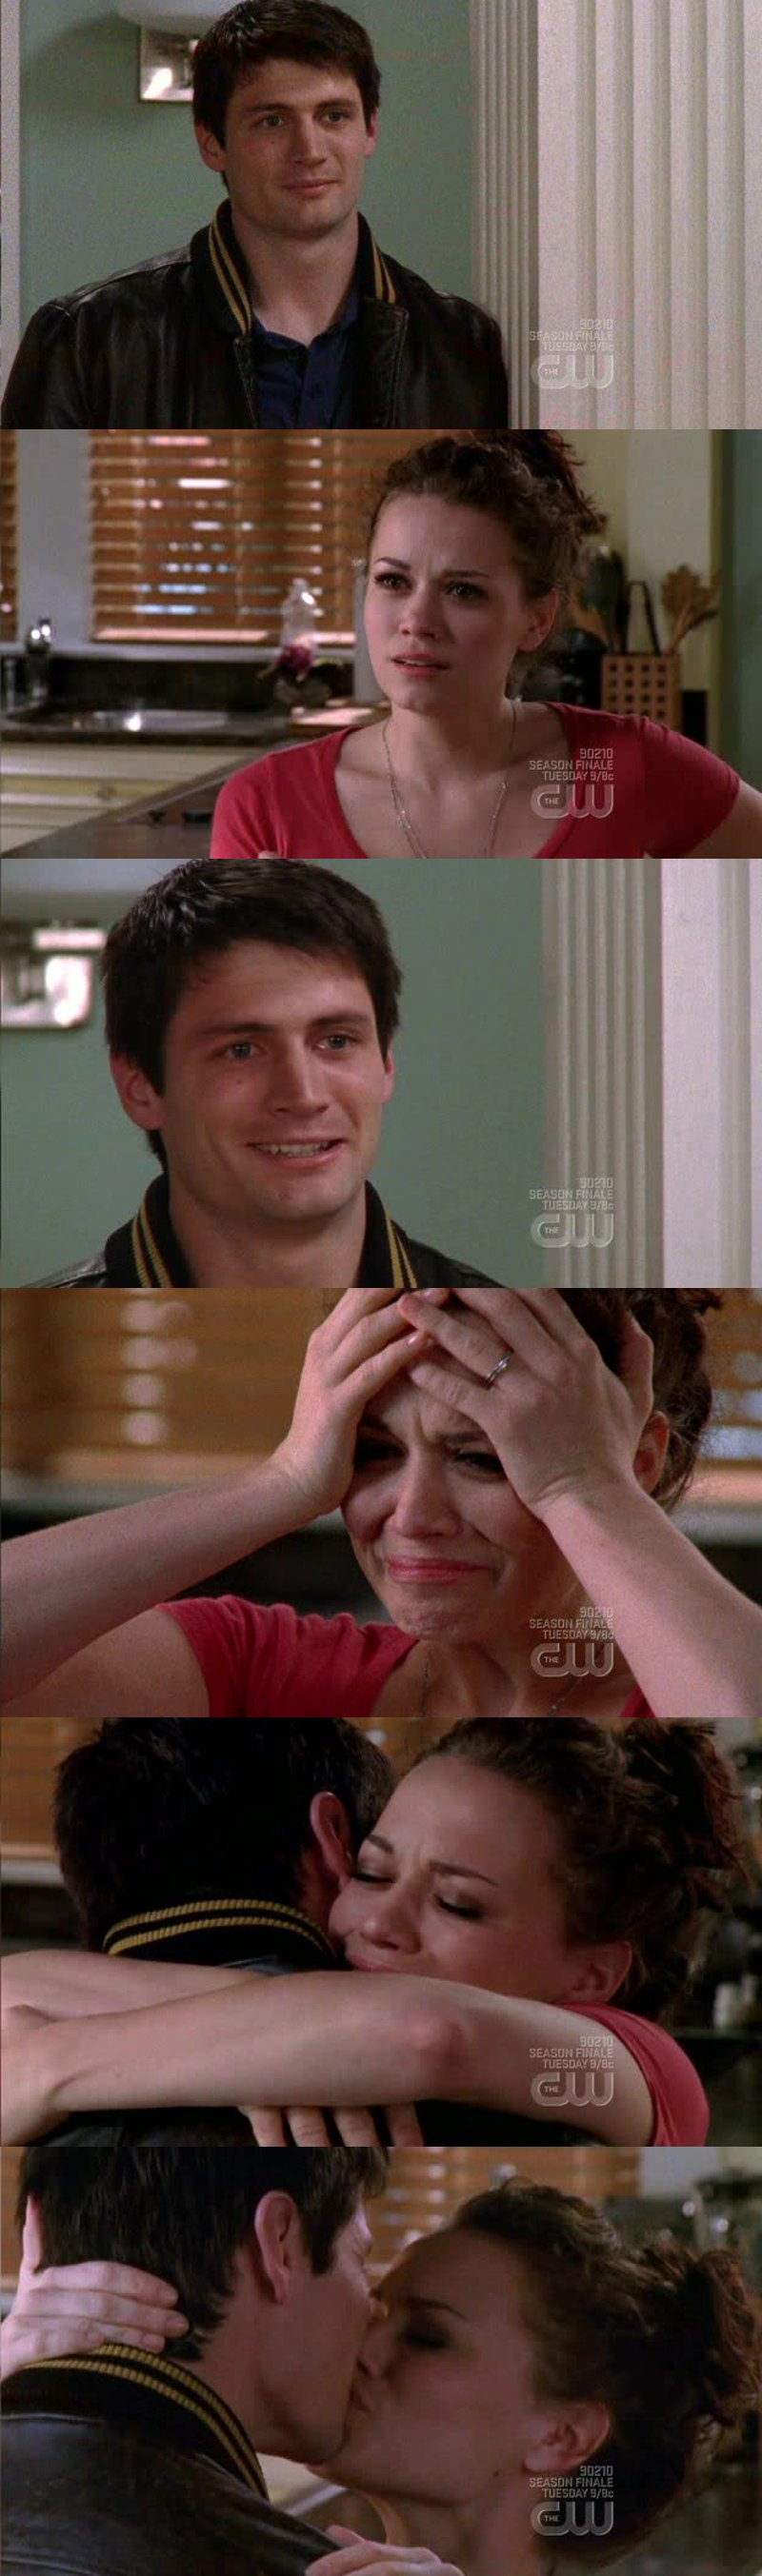 This scene moves me every time! I just love them and Nathan finally making it is amazing!!!